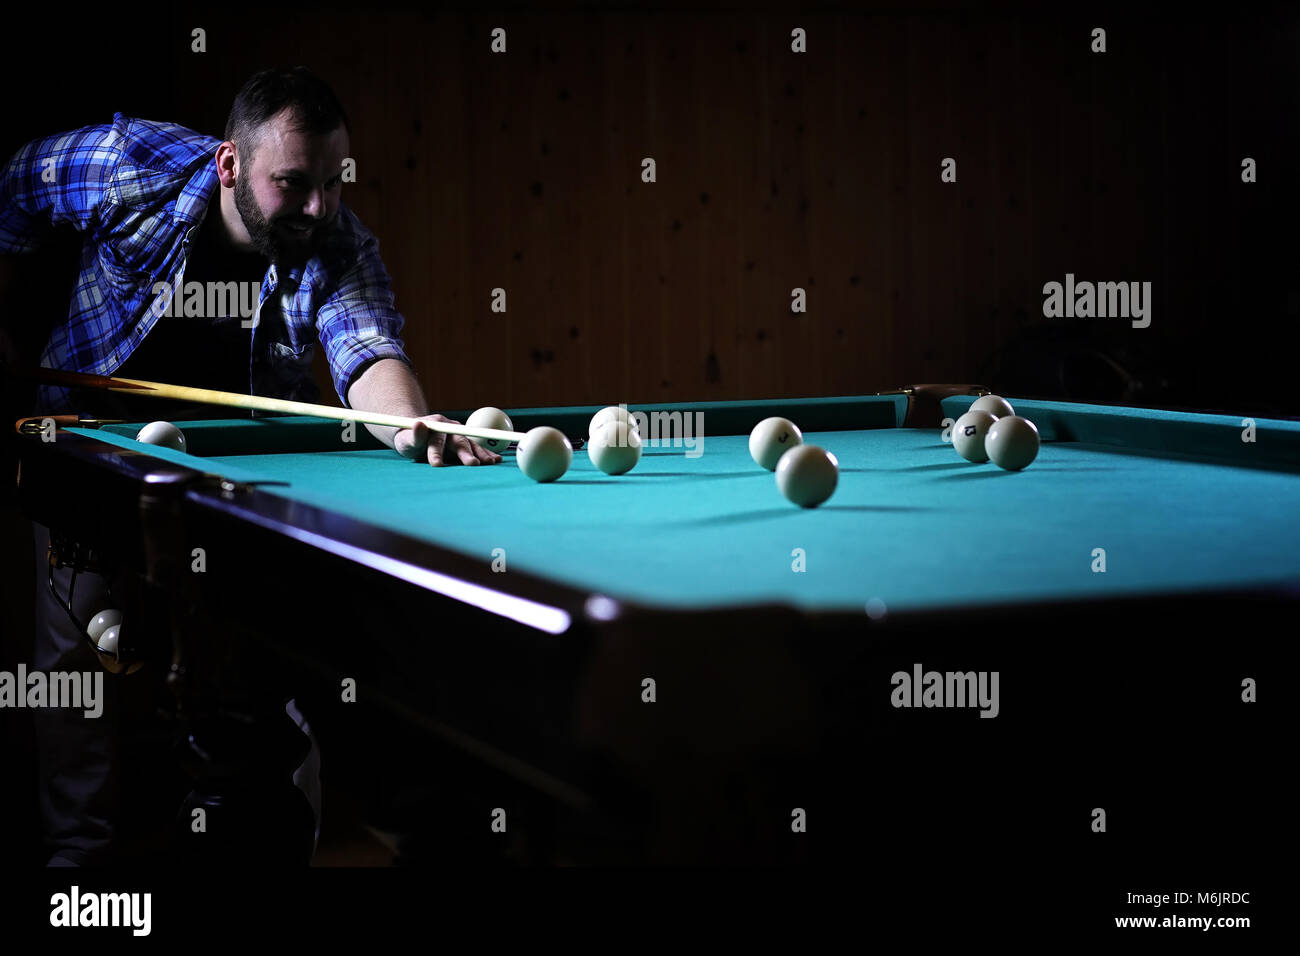 A Man With A Beard Plays A Big Billiard. Party In A 12 Foot Pool